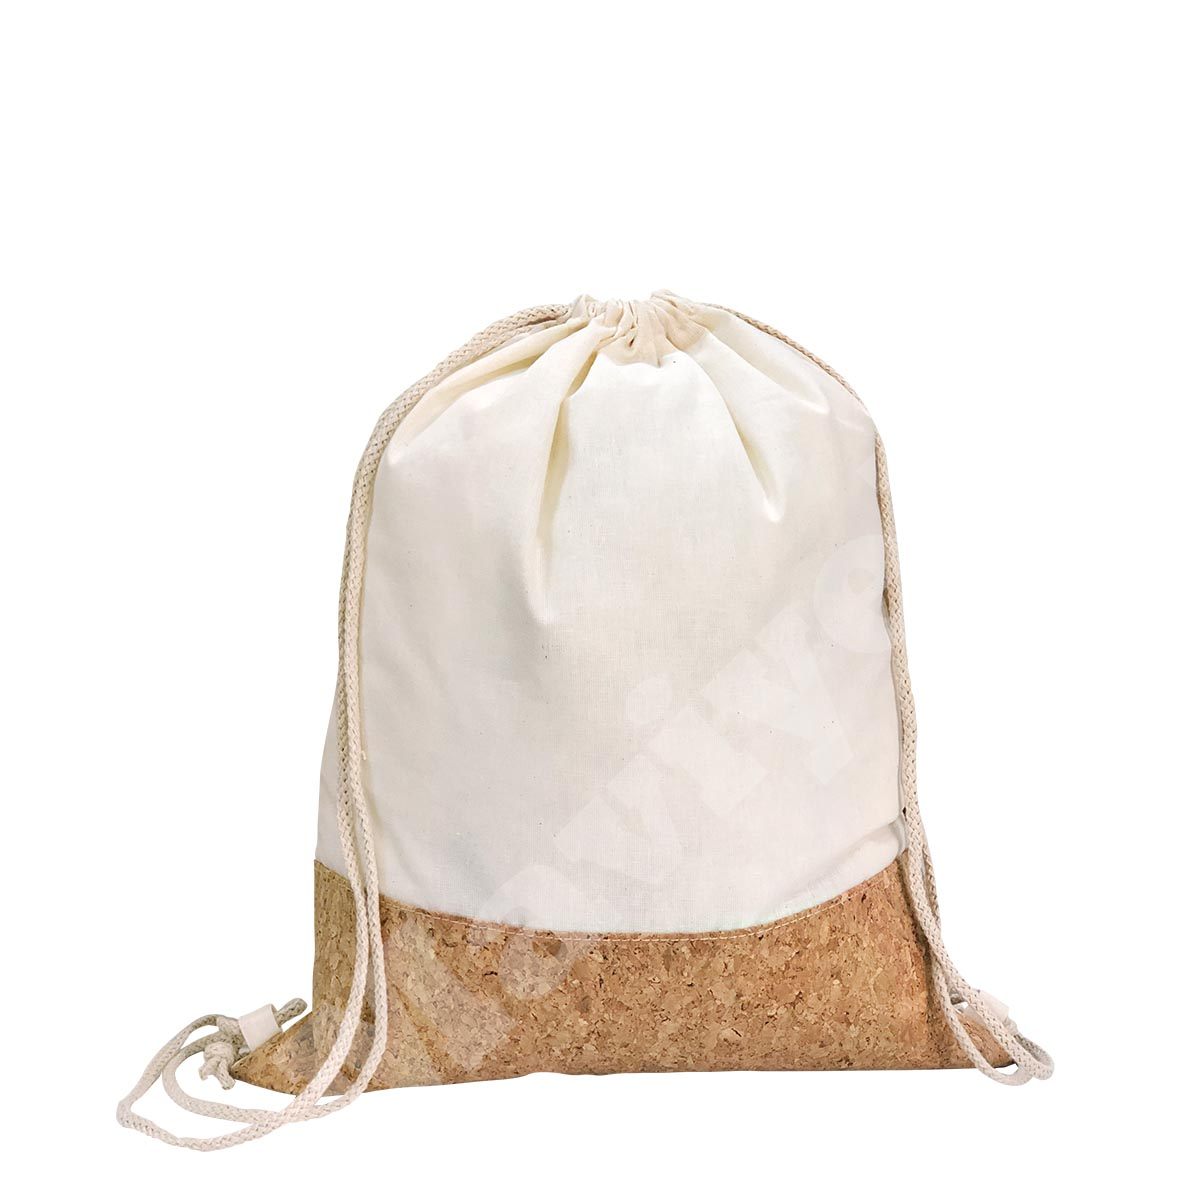 100% NATURAL COTTON DRAWSTRING BACKPACK WITH CORK DETAILS